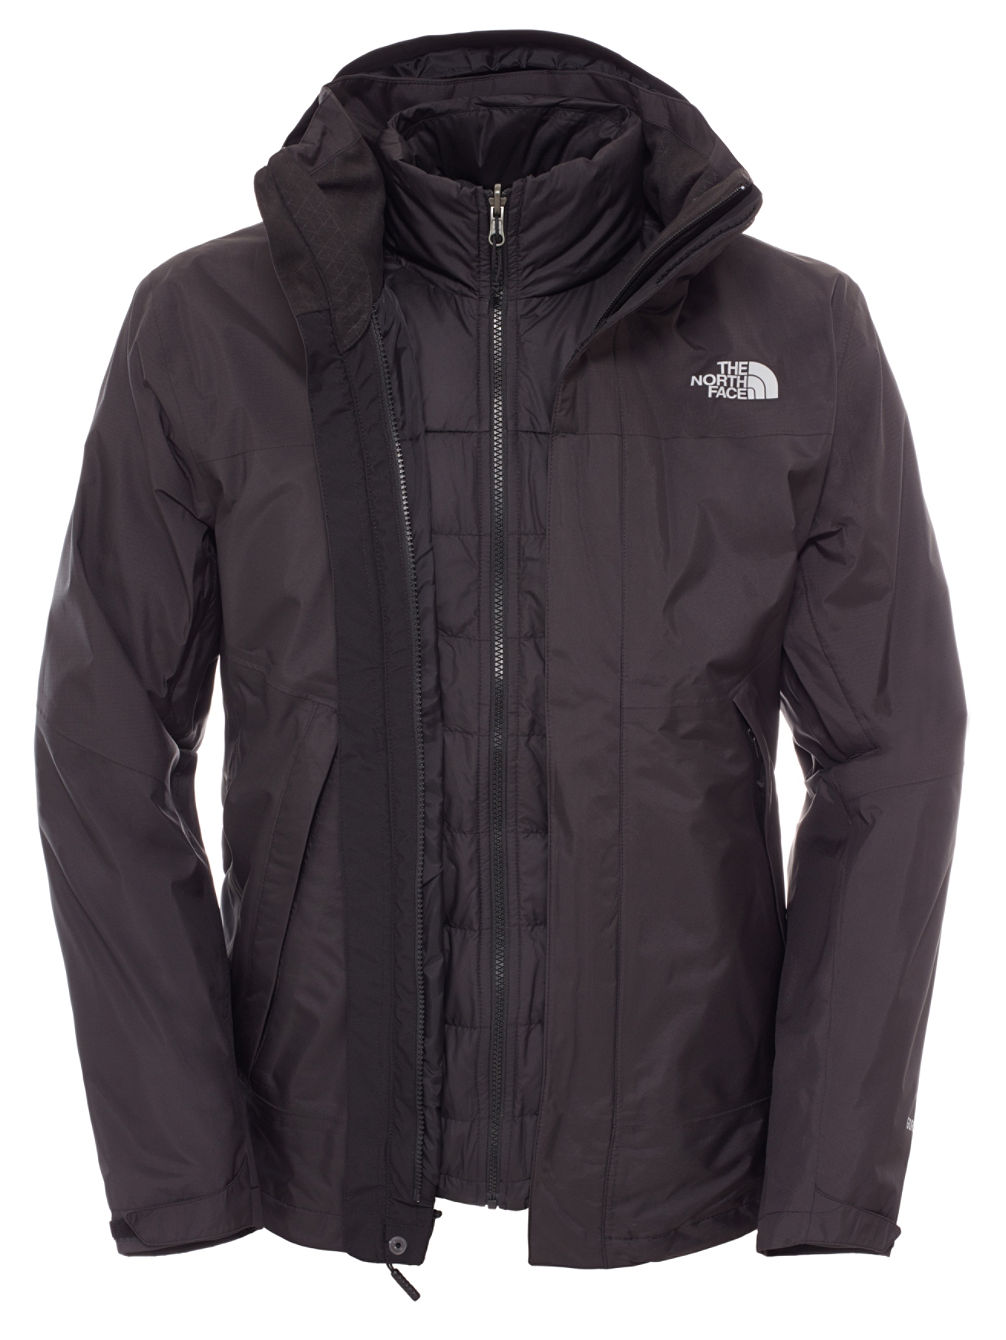 mountain-light-triclimate-outdoor-jacket